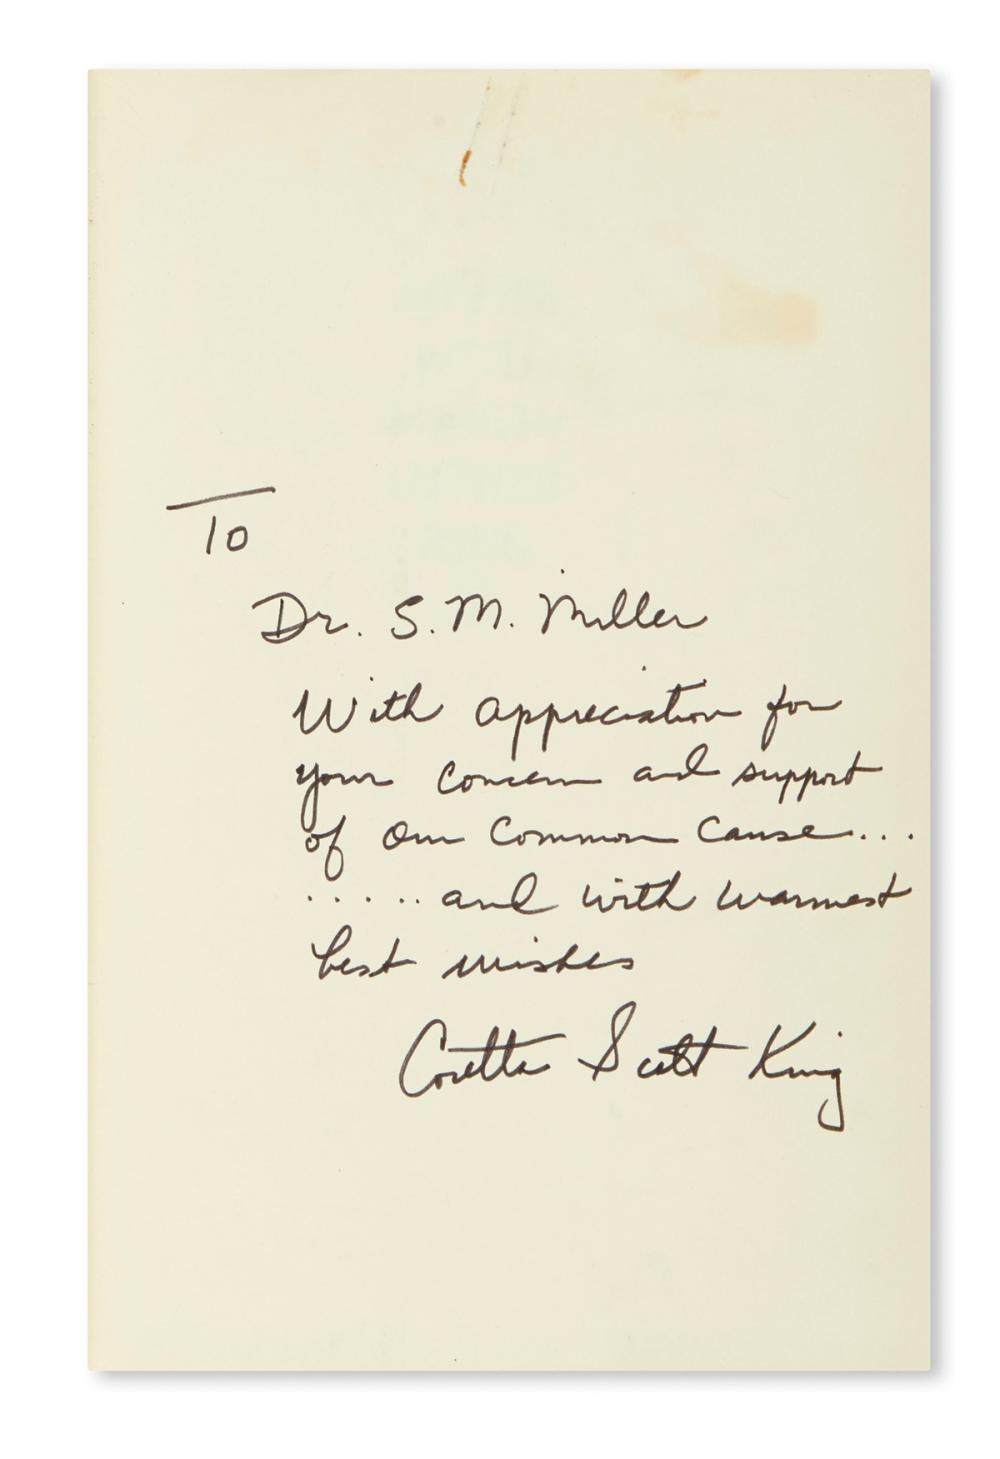 (KING, MARTIN LUTHER; JR.) KING, CORETTA SCOTT. My Life with Martin Luther King, Jr. Signed and Inscribed, on the front free endpaper: